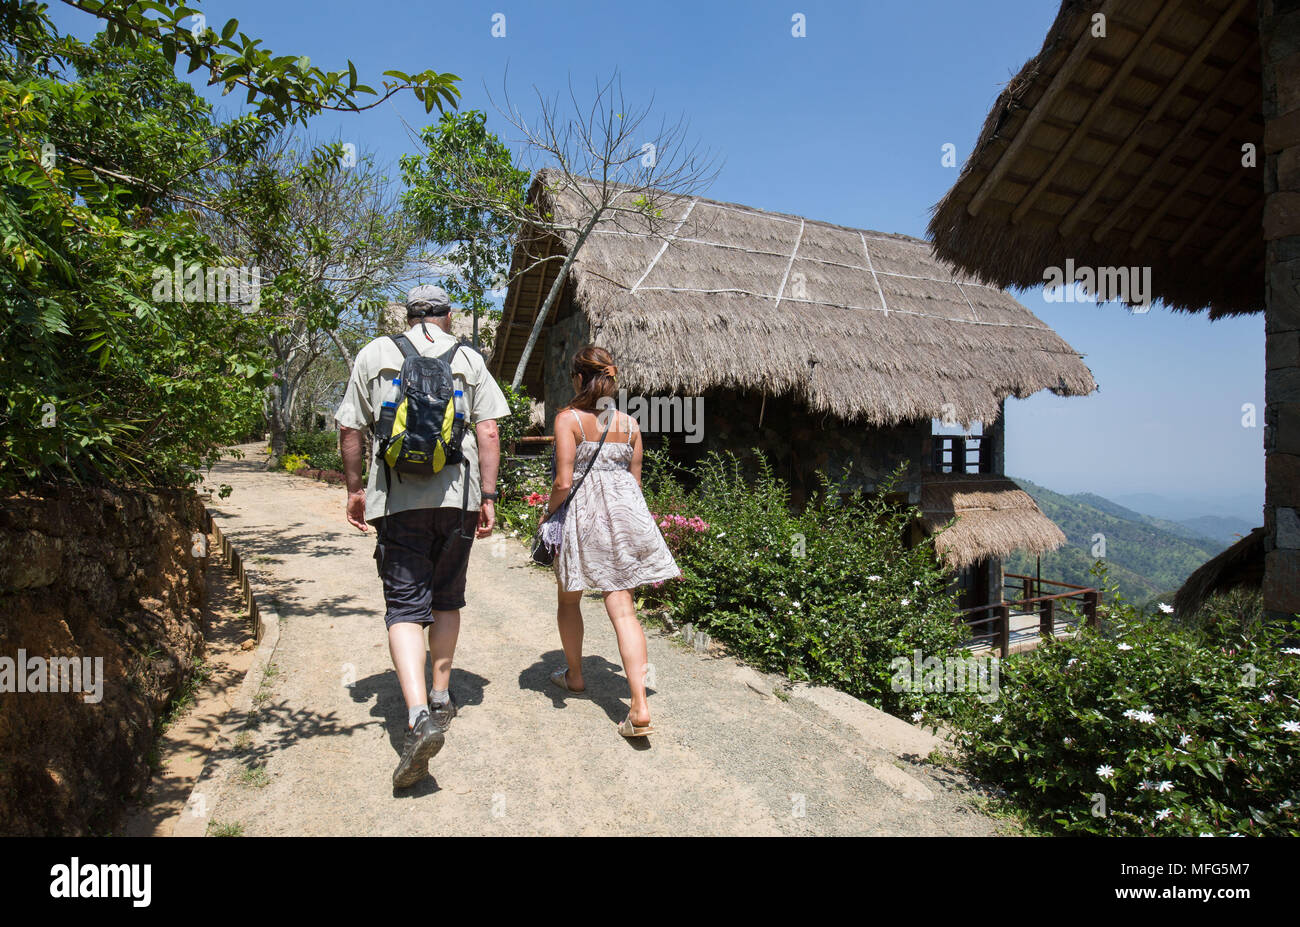 Tourists walking to their lodge in the 98 Acres Resort  and Spa in Ella, Sri Lanka Stock Photo